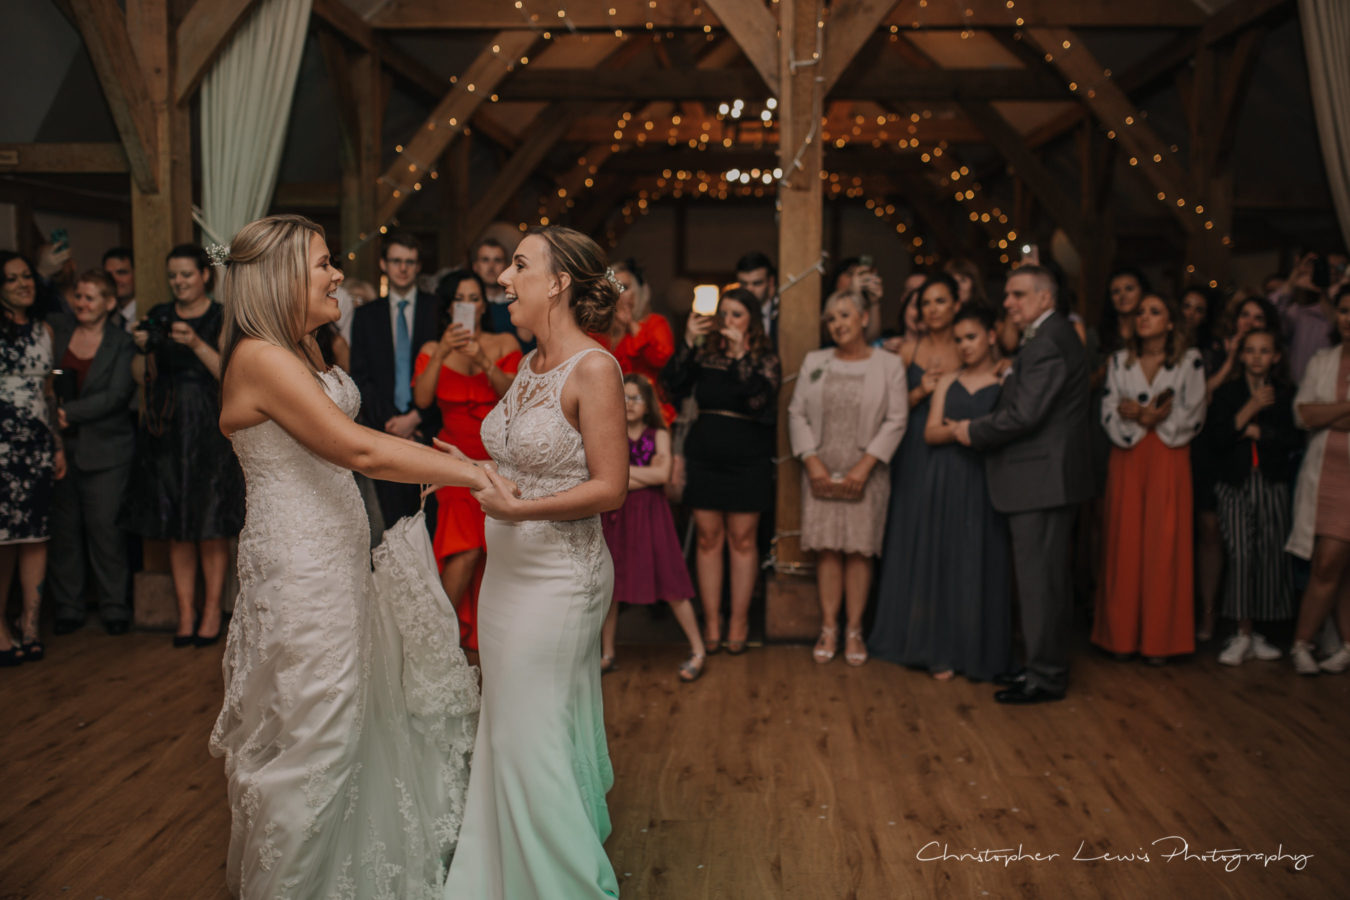 Sandhole-Oak-Barn-Wedding-Christopher-Lewis-Photography- 67